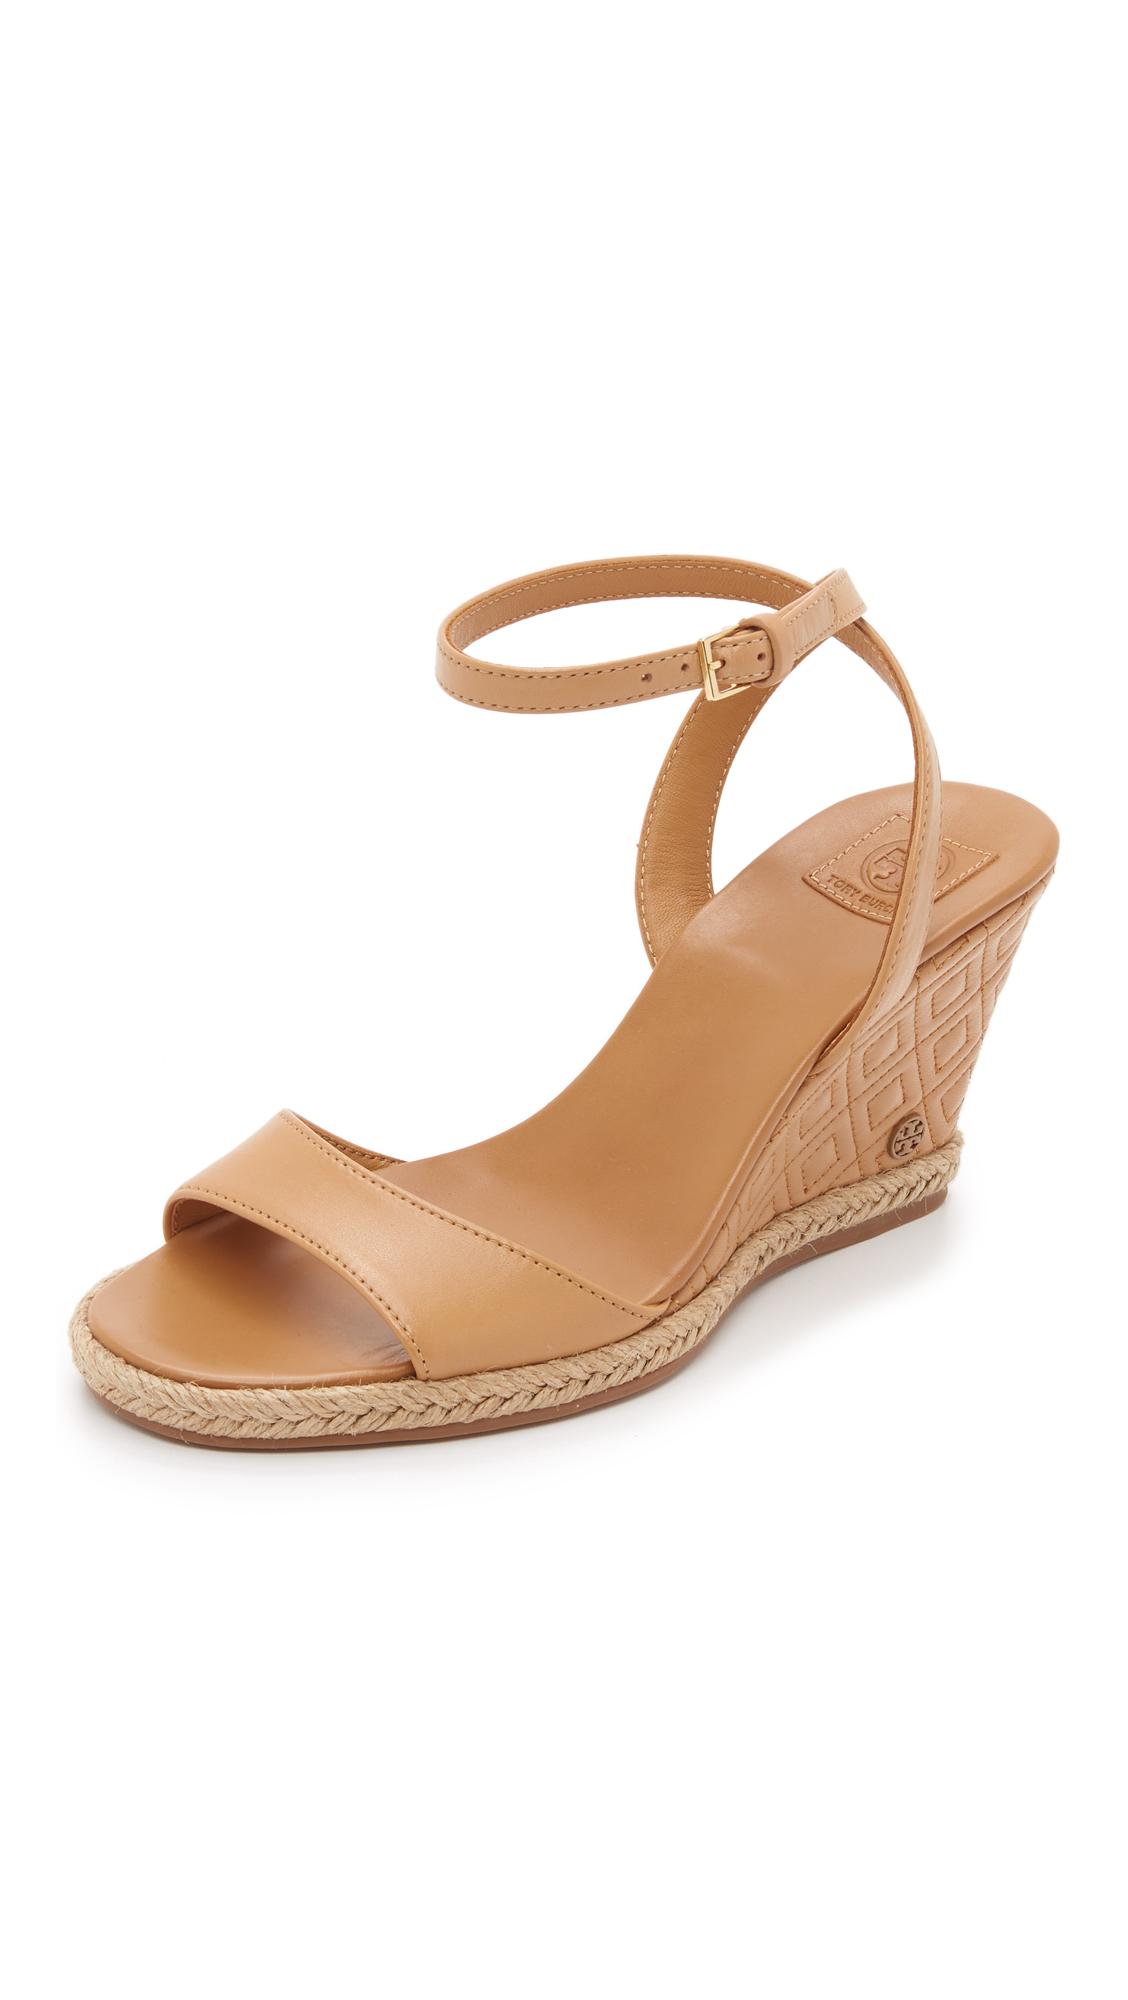 3b9346d2252 Tory Burch Marion Quilted Wedge Sandals in Natural - Lyst